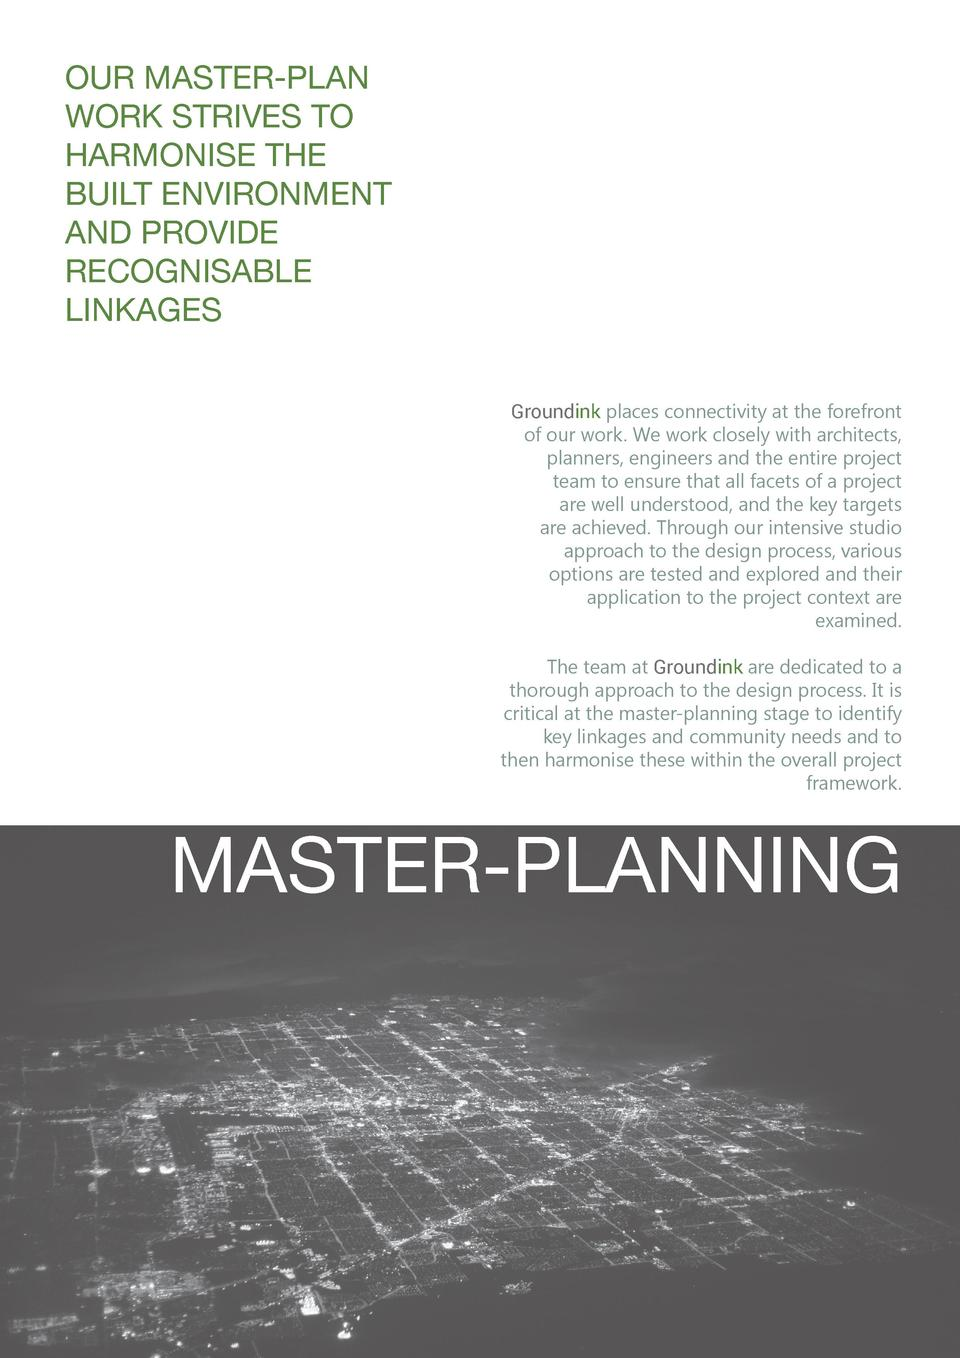 OUR MASTER-PLAN WORK STRIVES TO HARMONISE THE BUILT ENVIRONMENT AND PROVIDE RECOGNISABLE LINKAGES Groundink places connect...